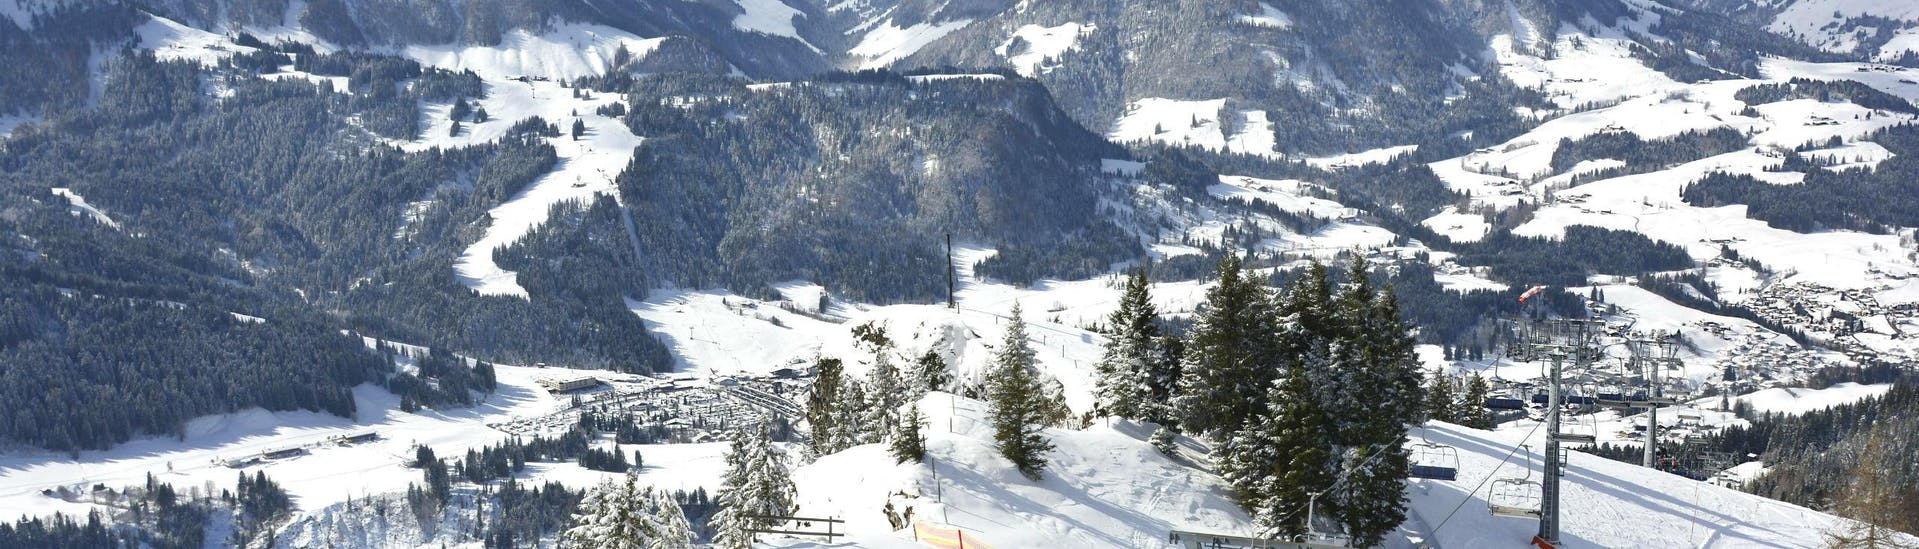 A panoramic view of the Tyrolean ski resort of Fieberbrunn, where a number of ski schools carry out their ski lessons for skiers of all ages and levels.